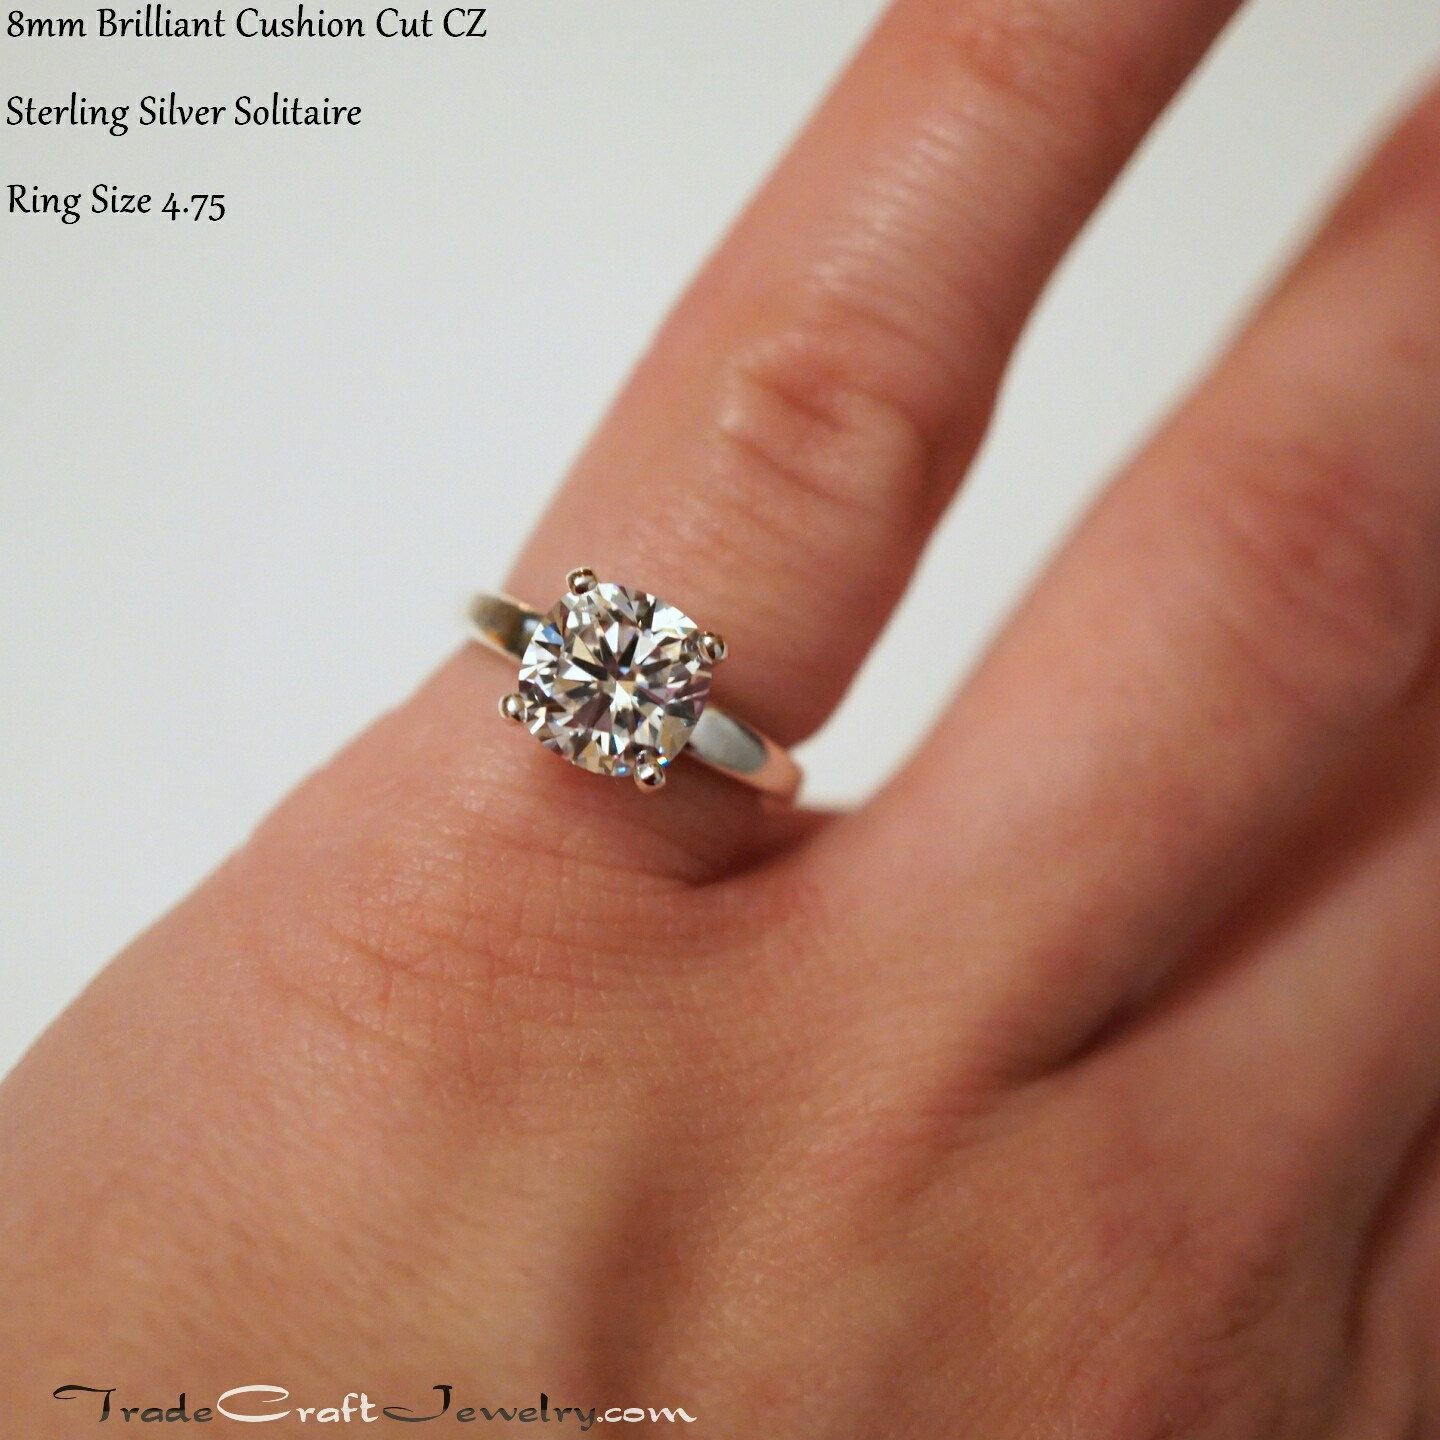 Cushion Cut CZ Engagement Ring Set in a 4 Prong Sterling Silver